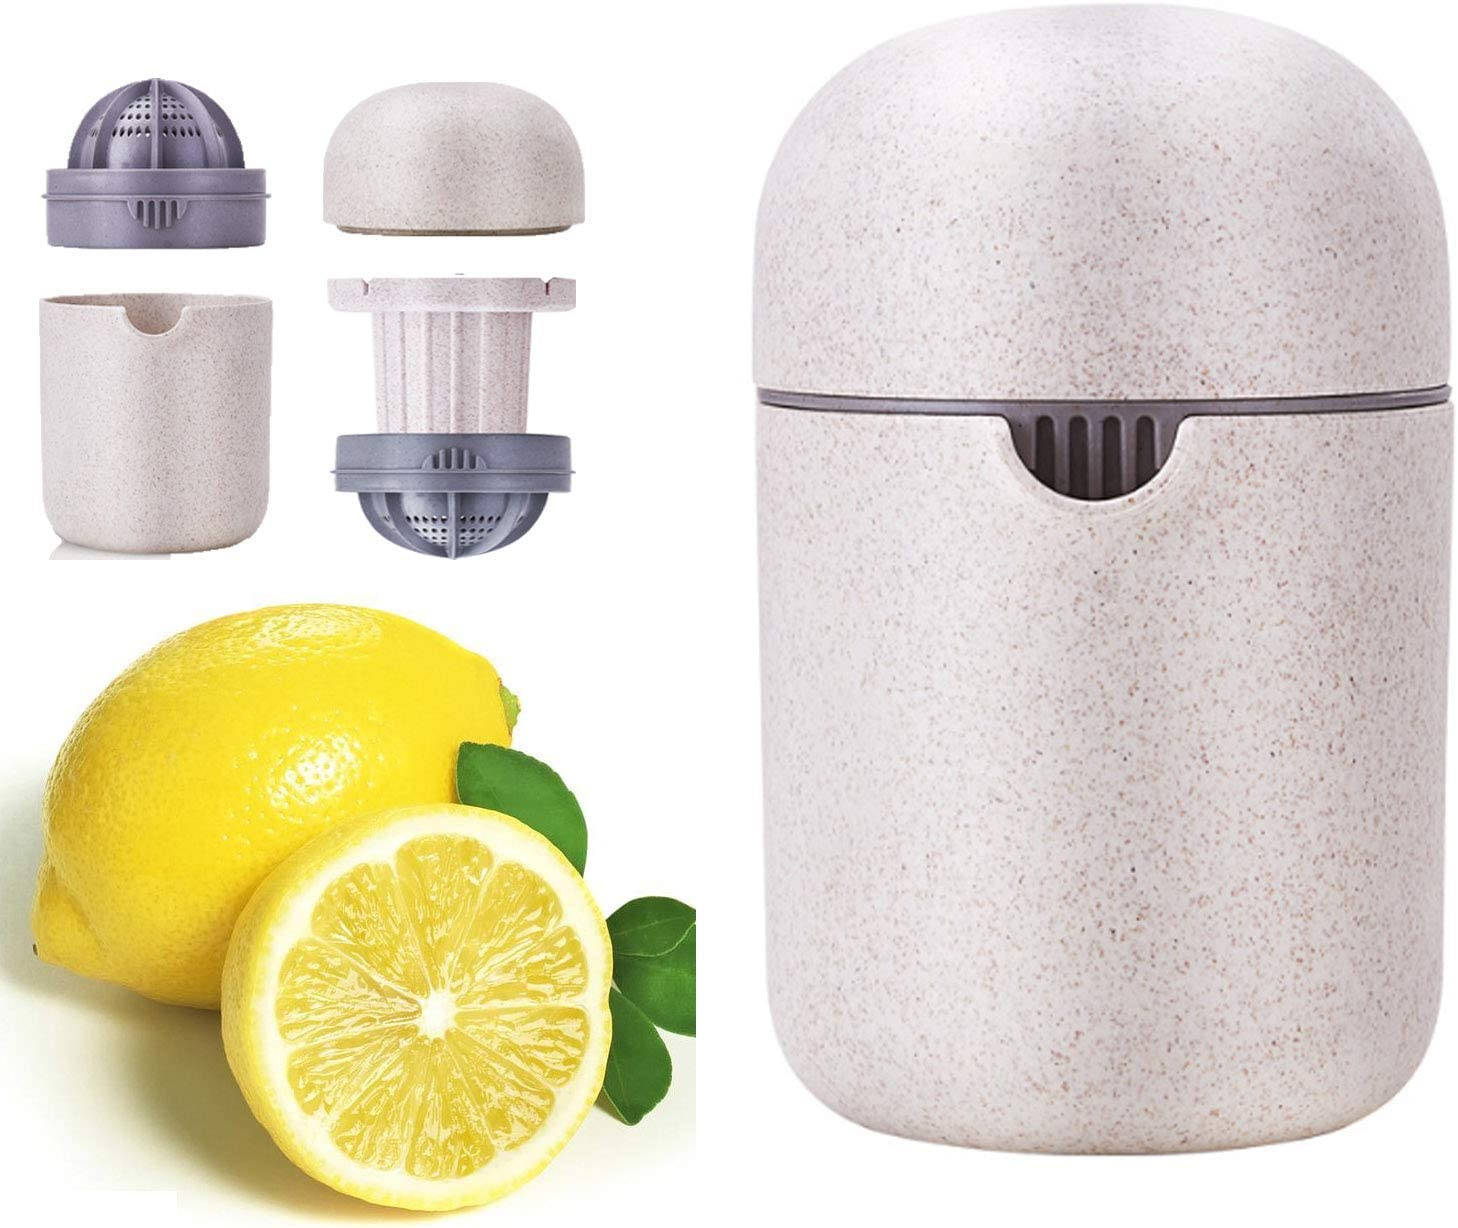 Manual Juicer with Storage Cup for Citrus Fruit, Oranges, Lemons, Travel and Kitchen Drinking Dinning DIY Juice Tool, Rotary Pressure Squeezer with Container and Filter Strainer, Light Portable pp Str (beige)